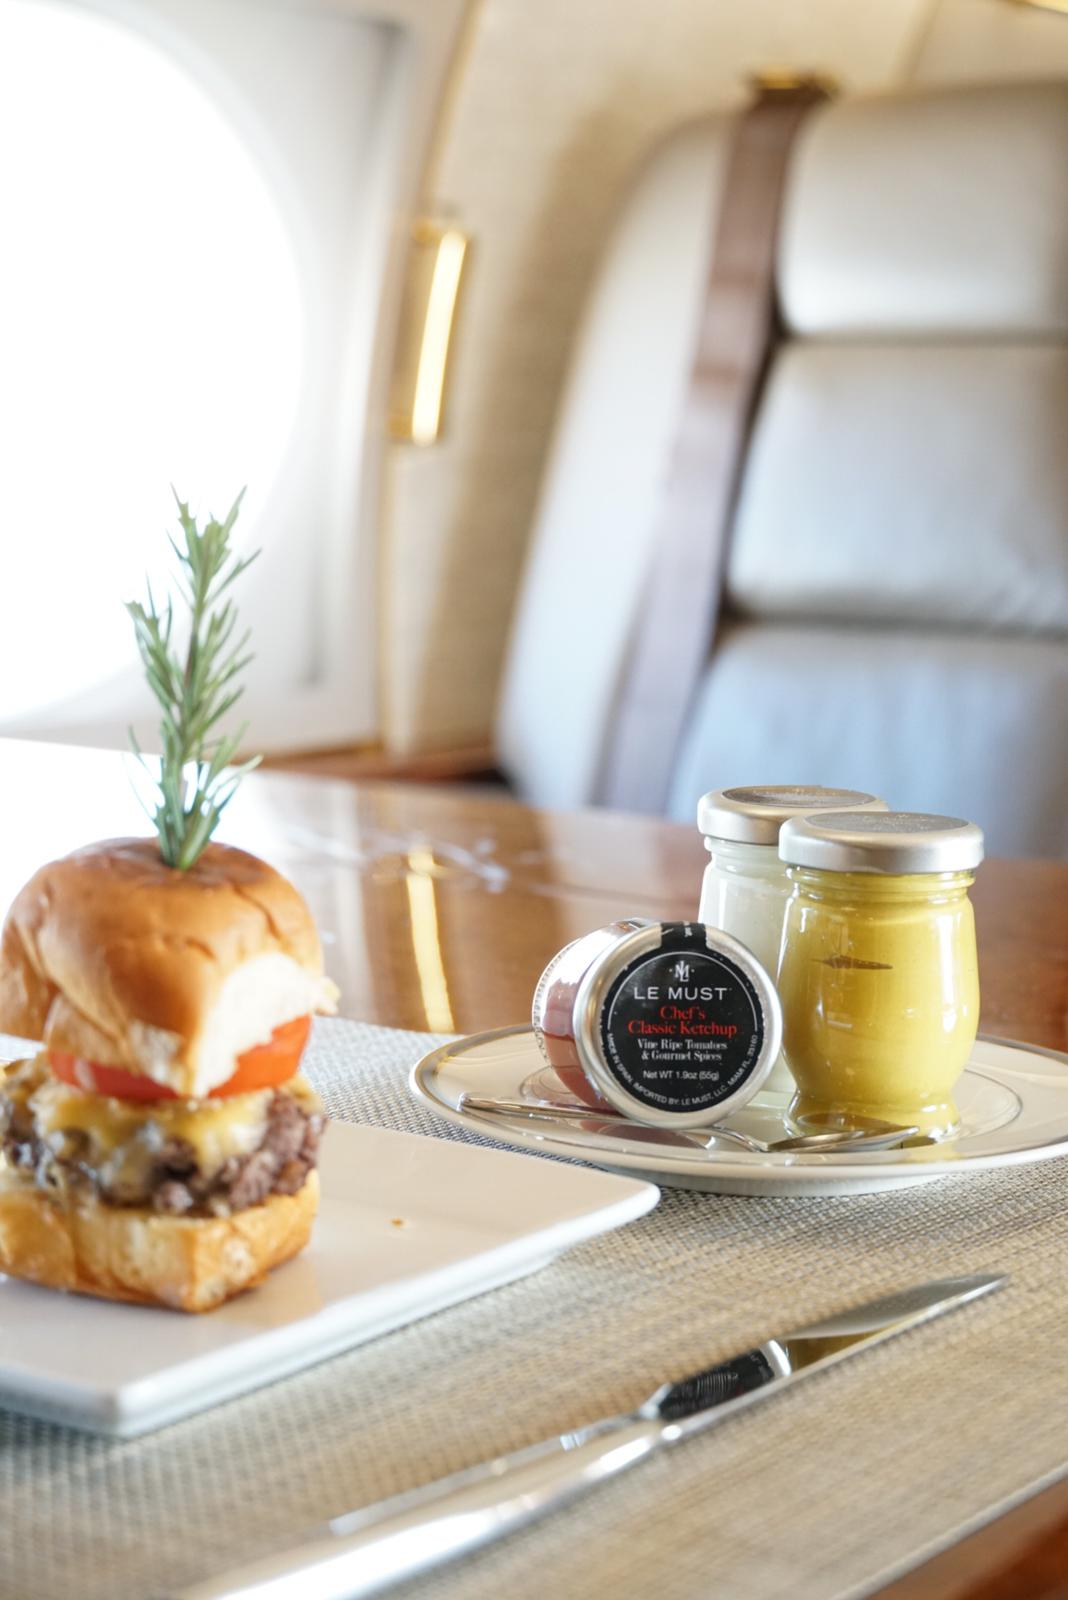 Le Must luxury condiments for private aviation